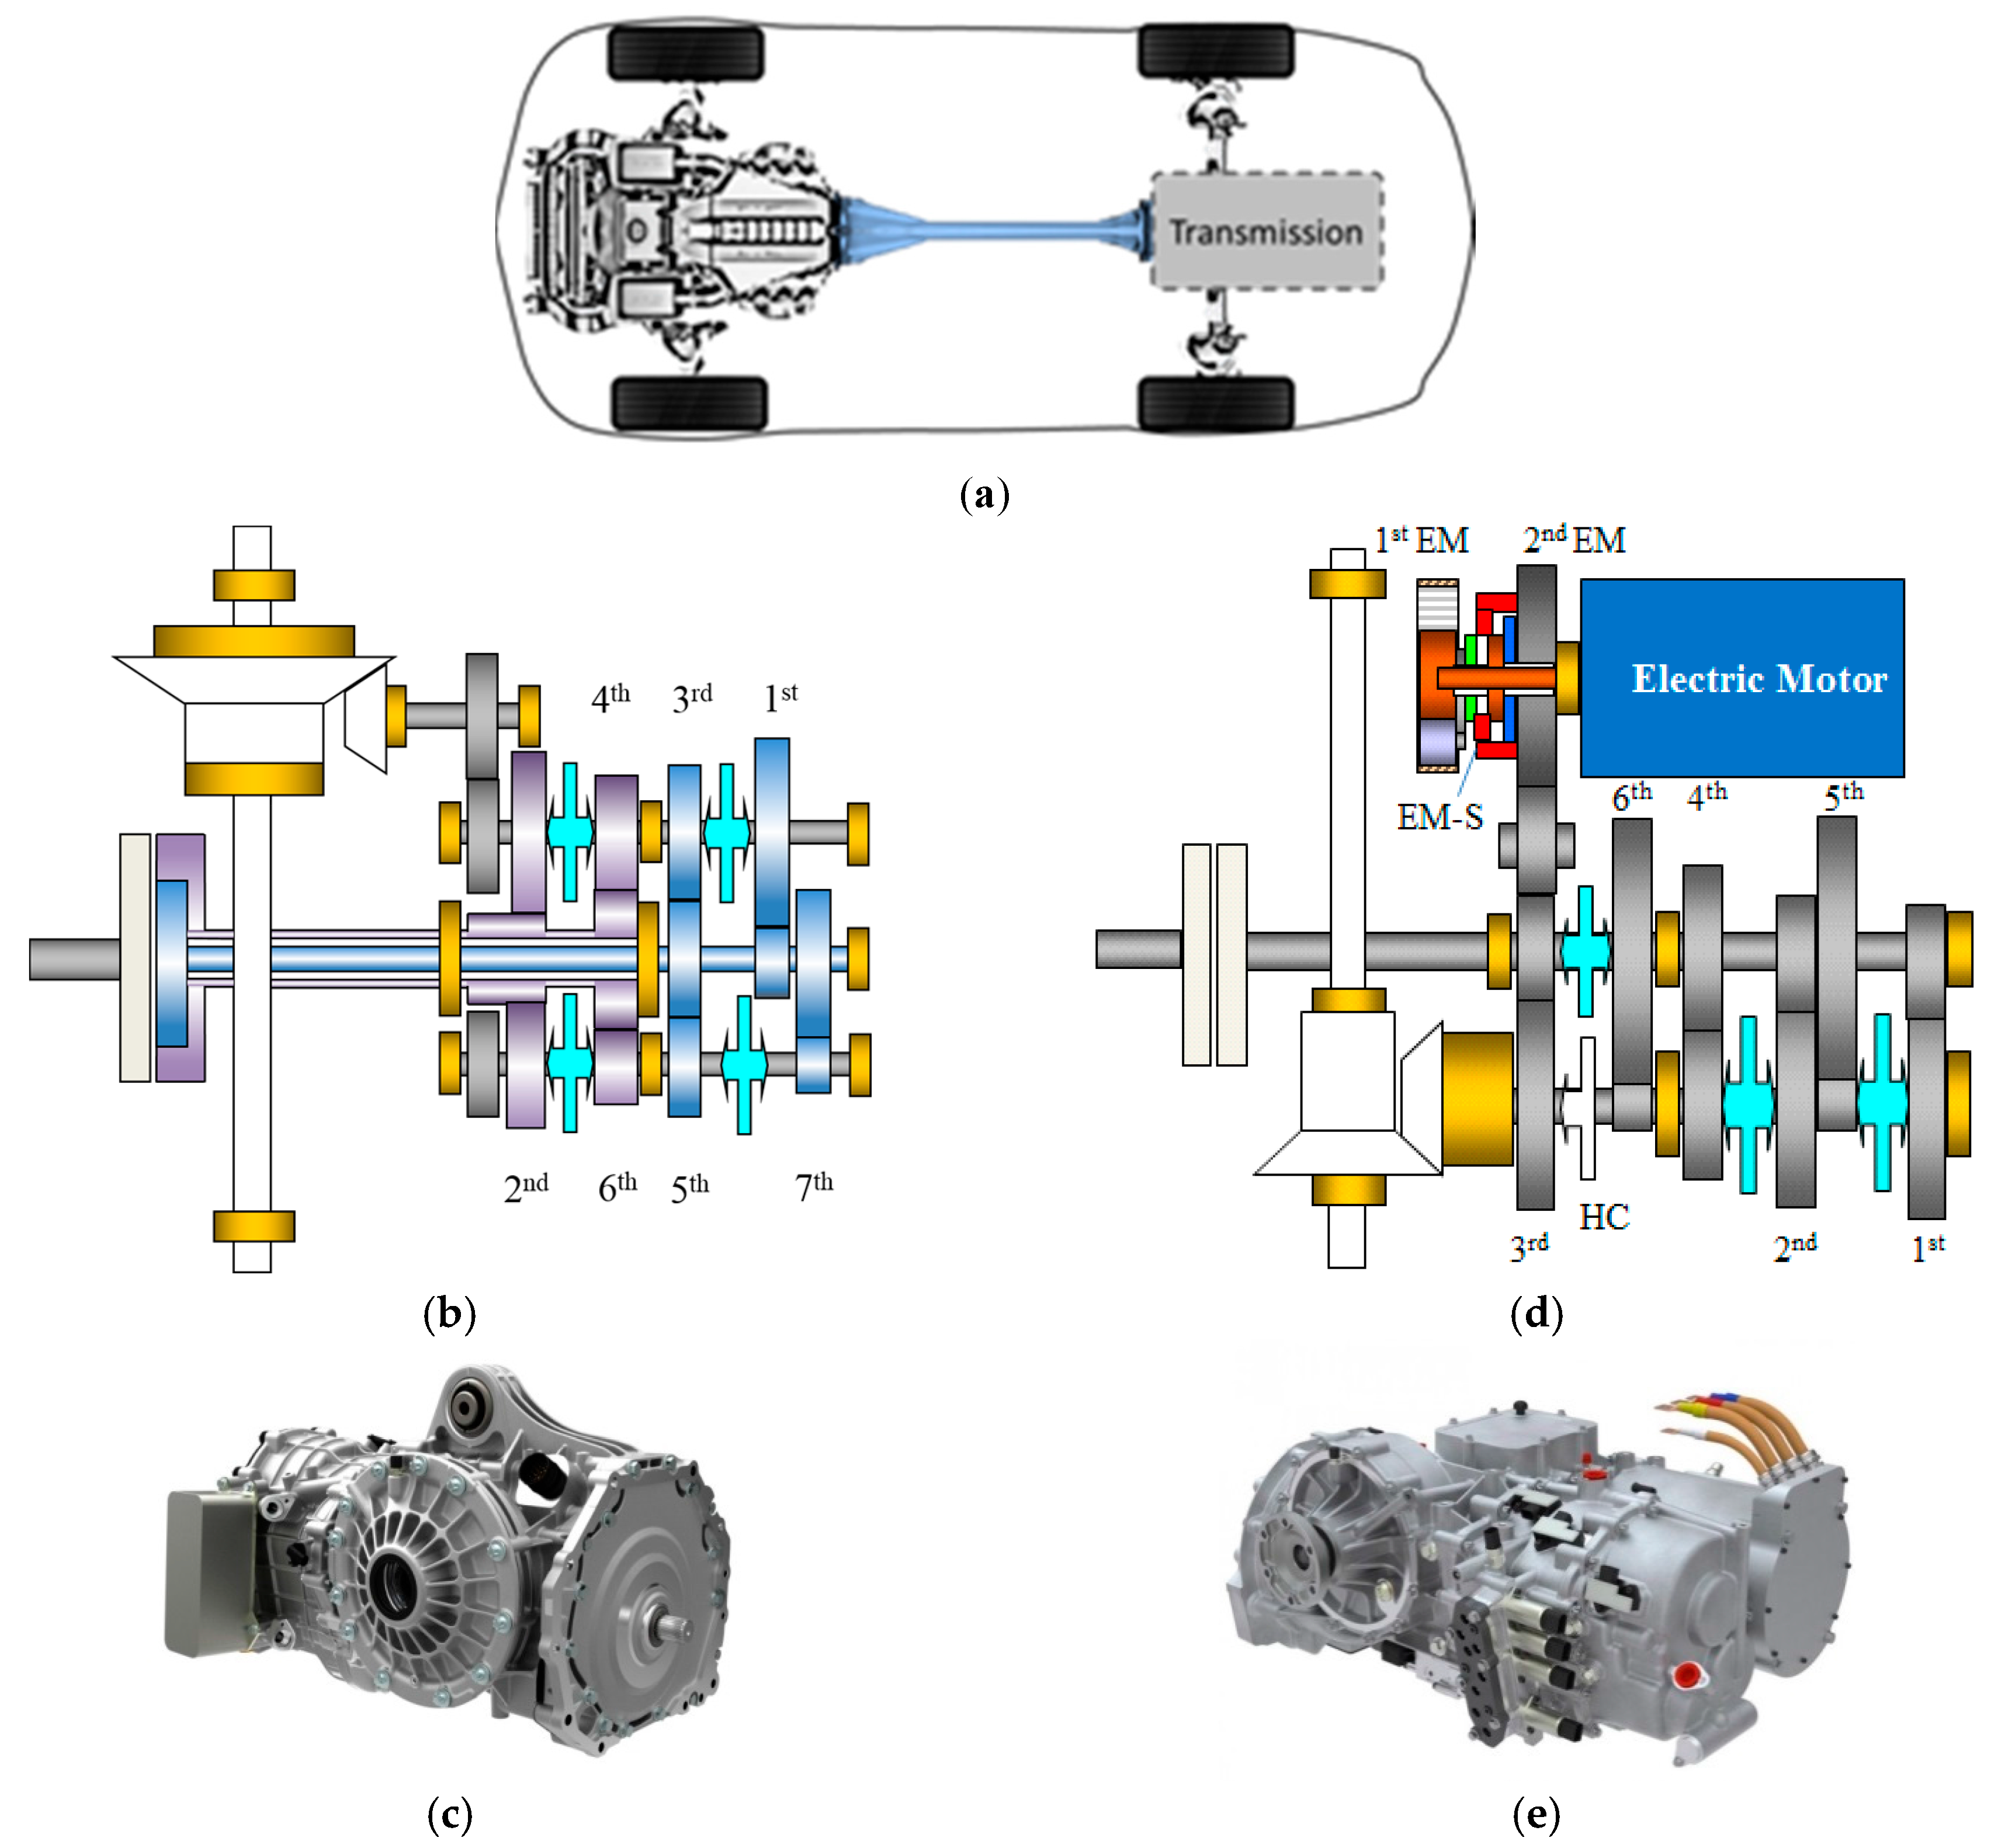 Dual Clutch Transmission >> Energies Free Full Text On The Energy Efficiency Of Dual Clutch